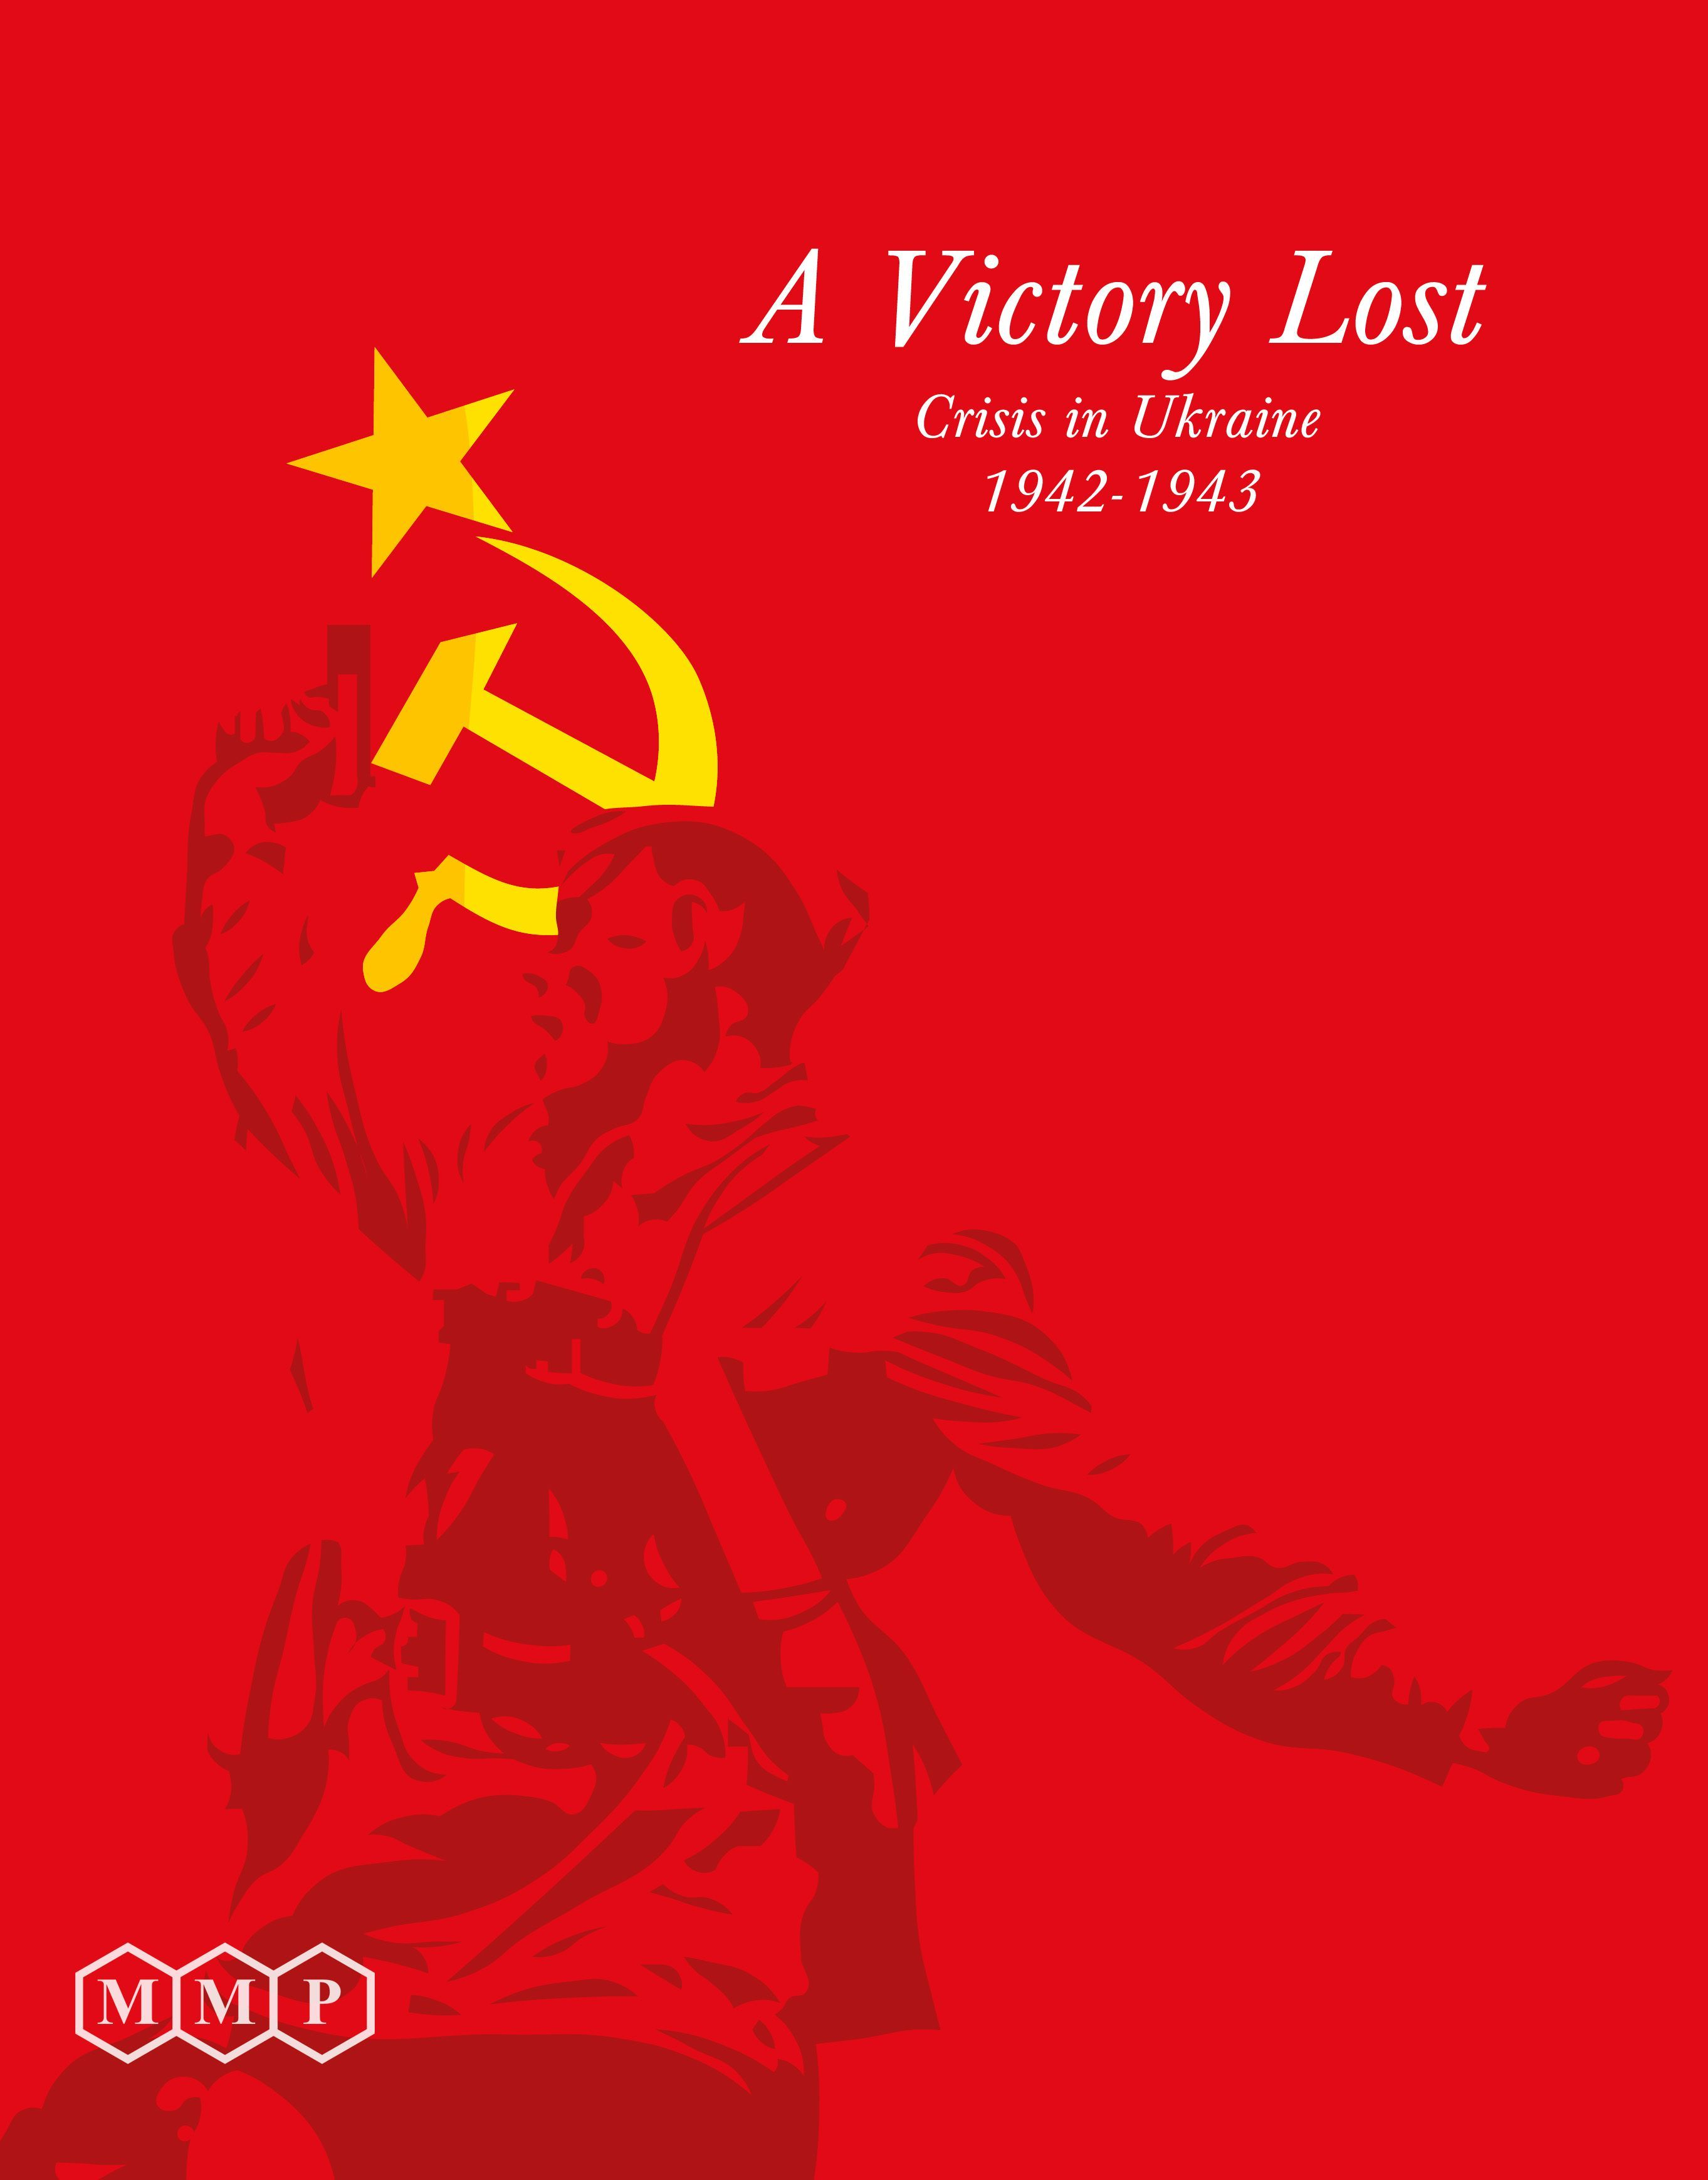 A Victory Lost: Crisis in Ukraine 1942-1943